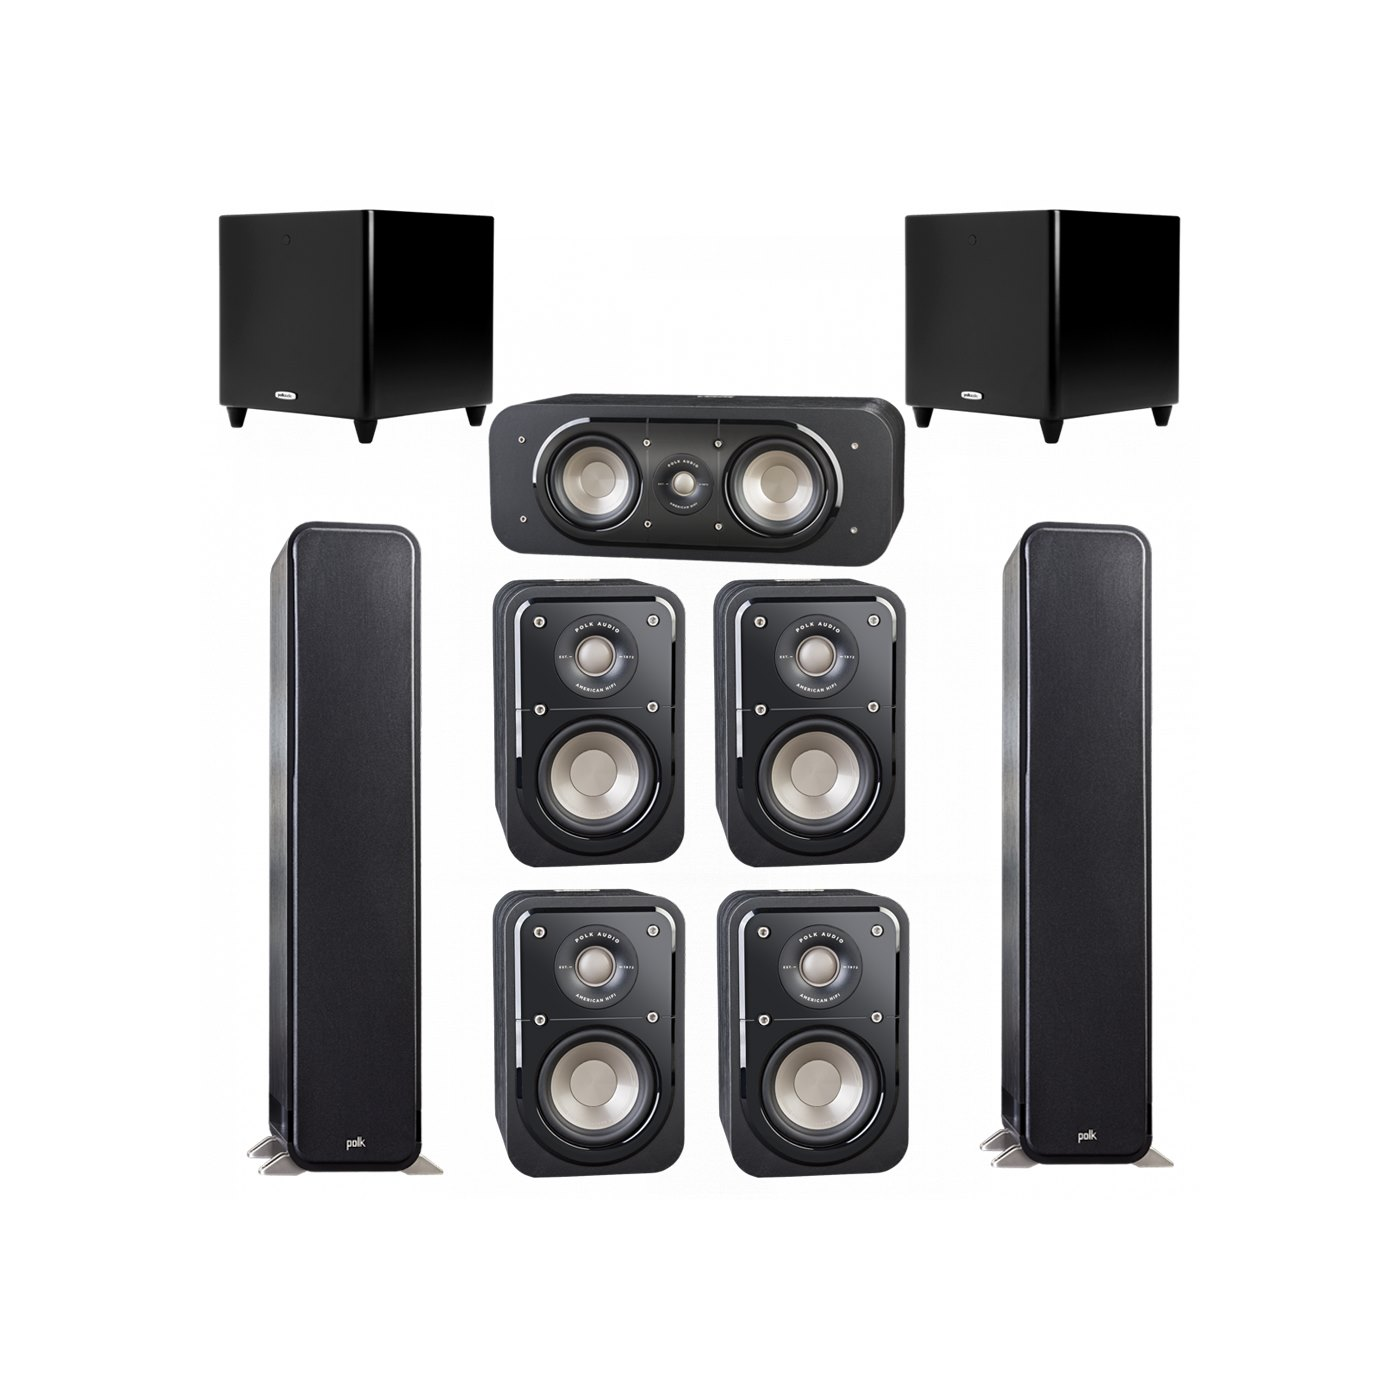 Polk Audio Signature 7.2 System with 2 S55 Tower Speaker, 1 Polk S30 Center Speaker, 4 Polk S10 Bookshelf Speaker, 2 Polk DSW PRO 550 wi Subwoofer